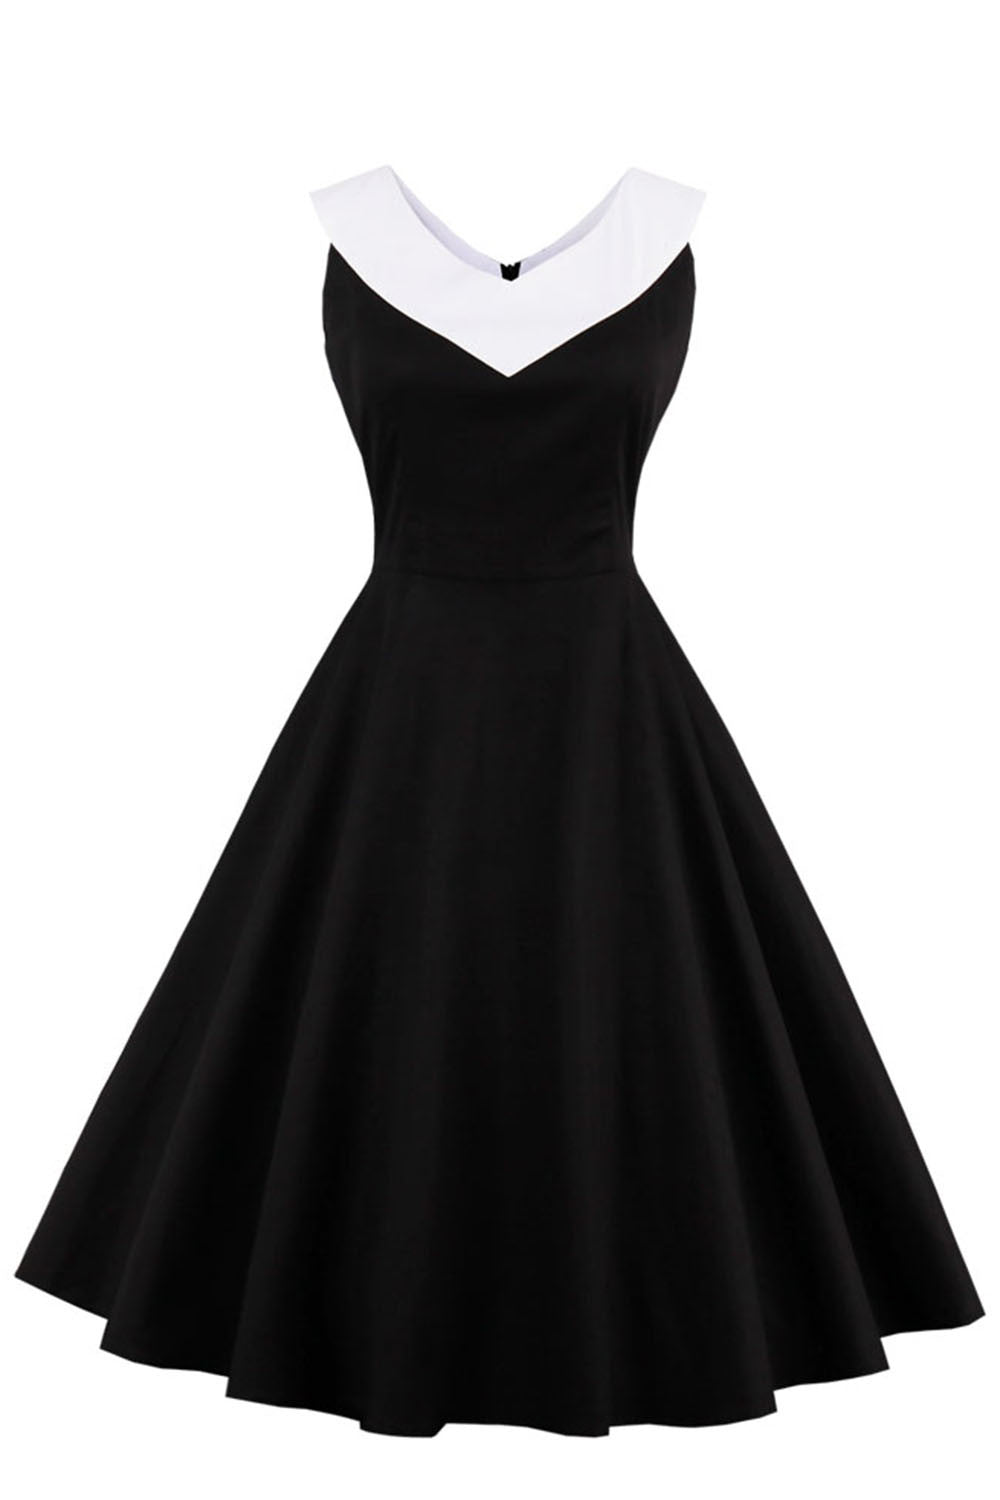 Chicloth Once in my Life  Valentine Dress - m / black